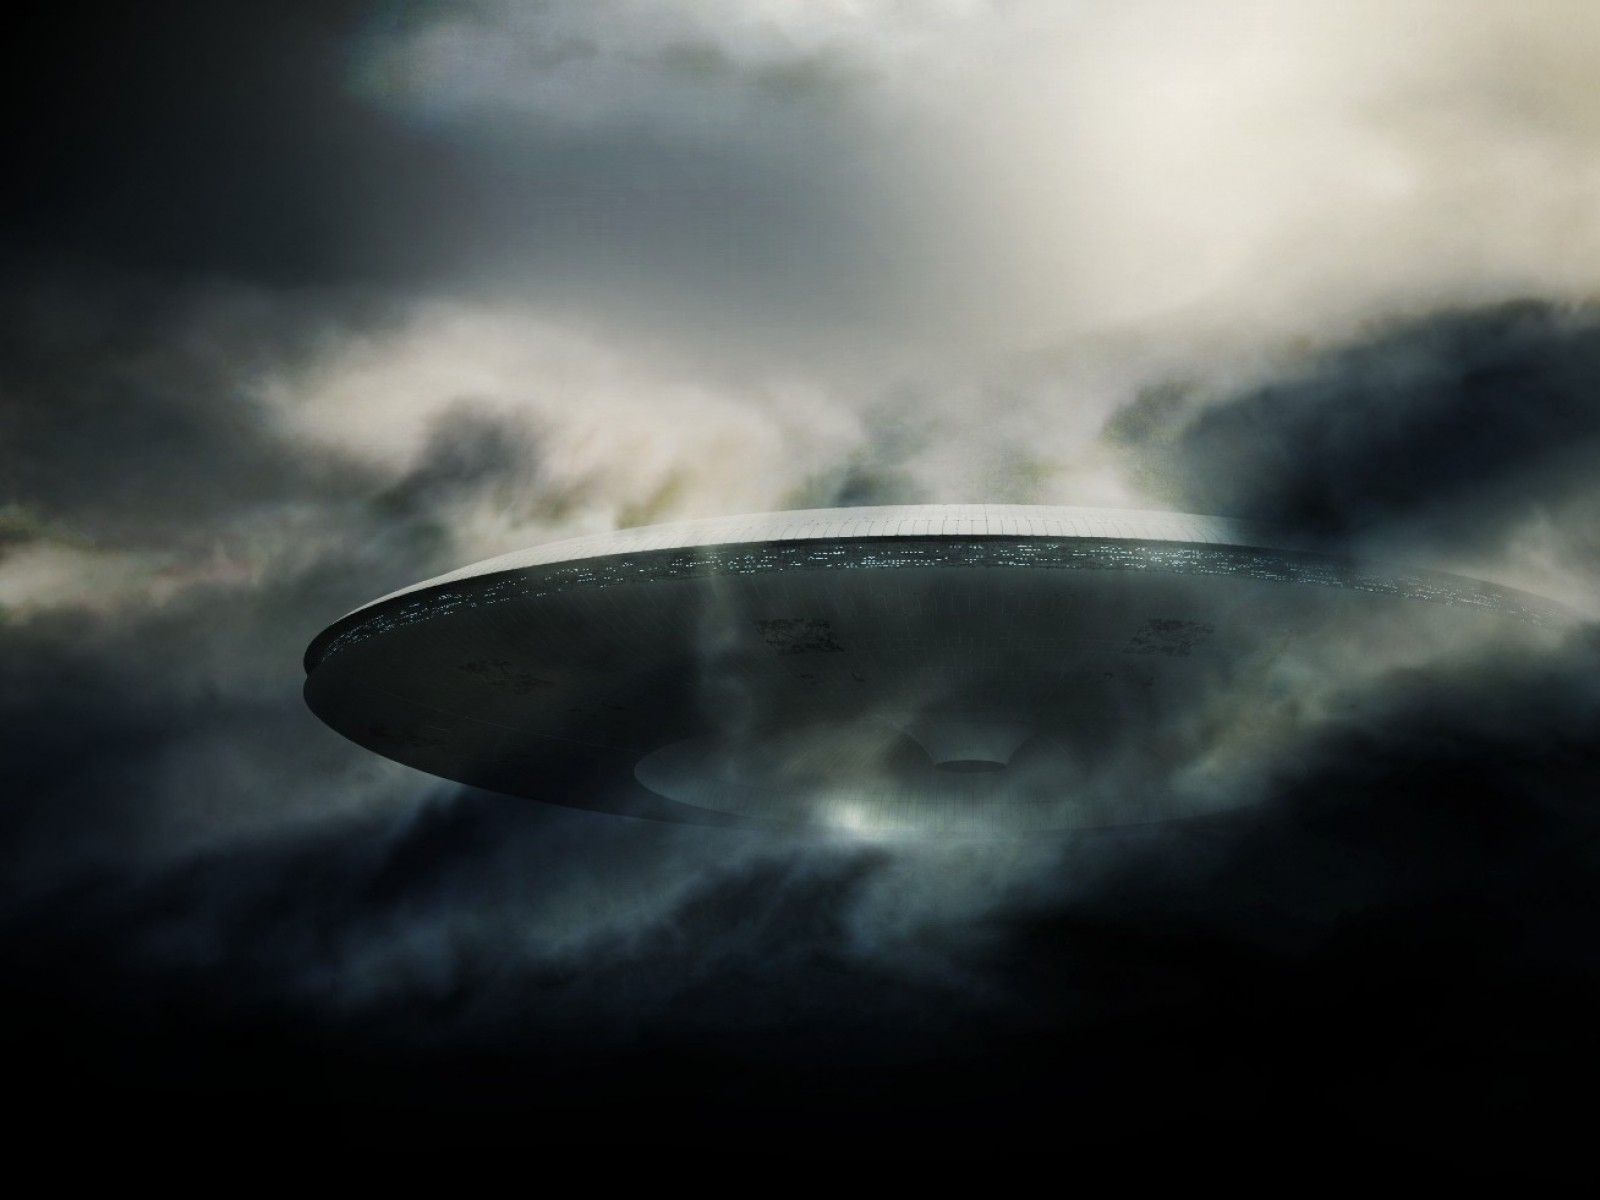 Spaceship Clouds ufo alien aliens spaceships wallpaper background 1600x1200